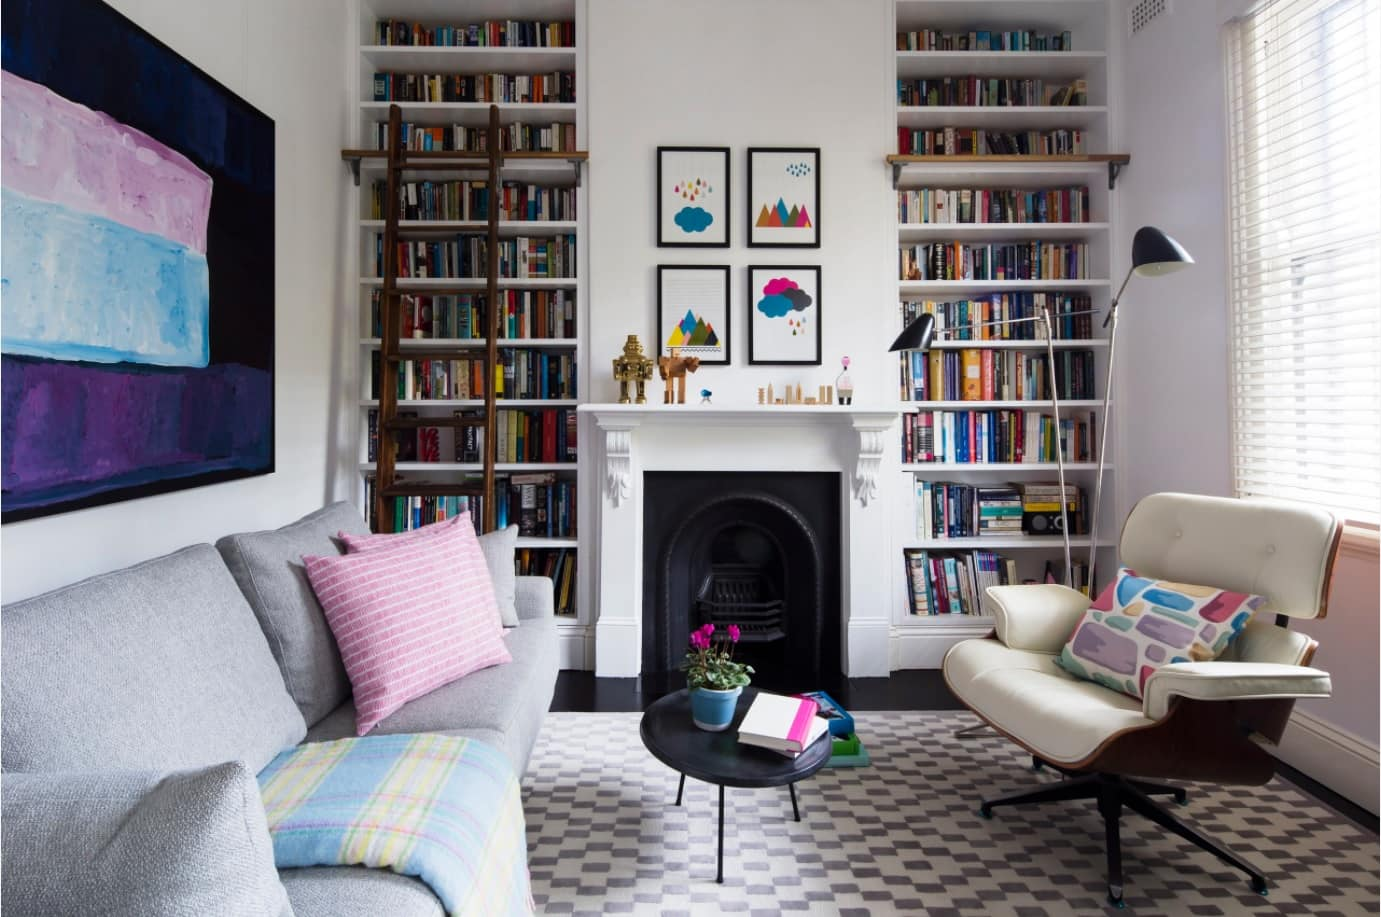 Library type of the living room with high ceiling, bookshelves and soft zone